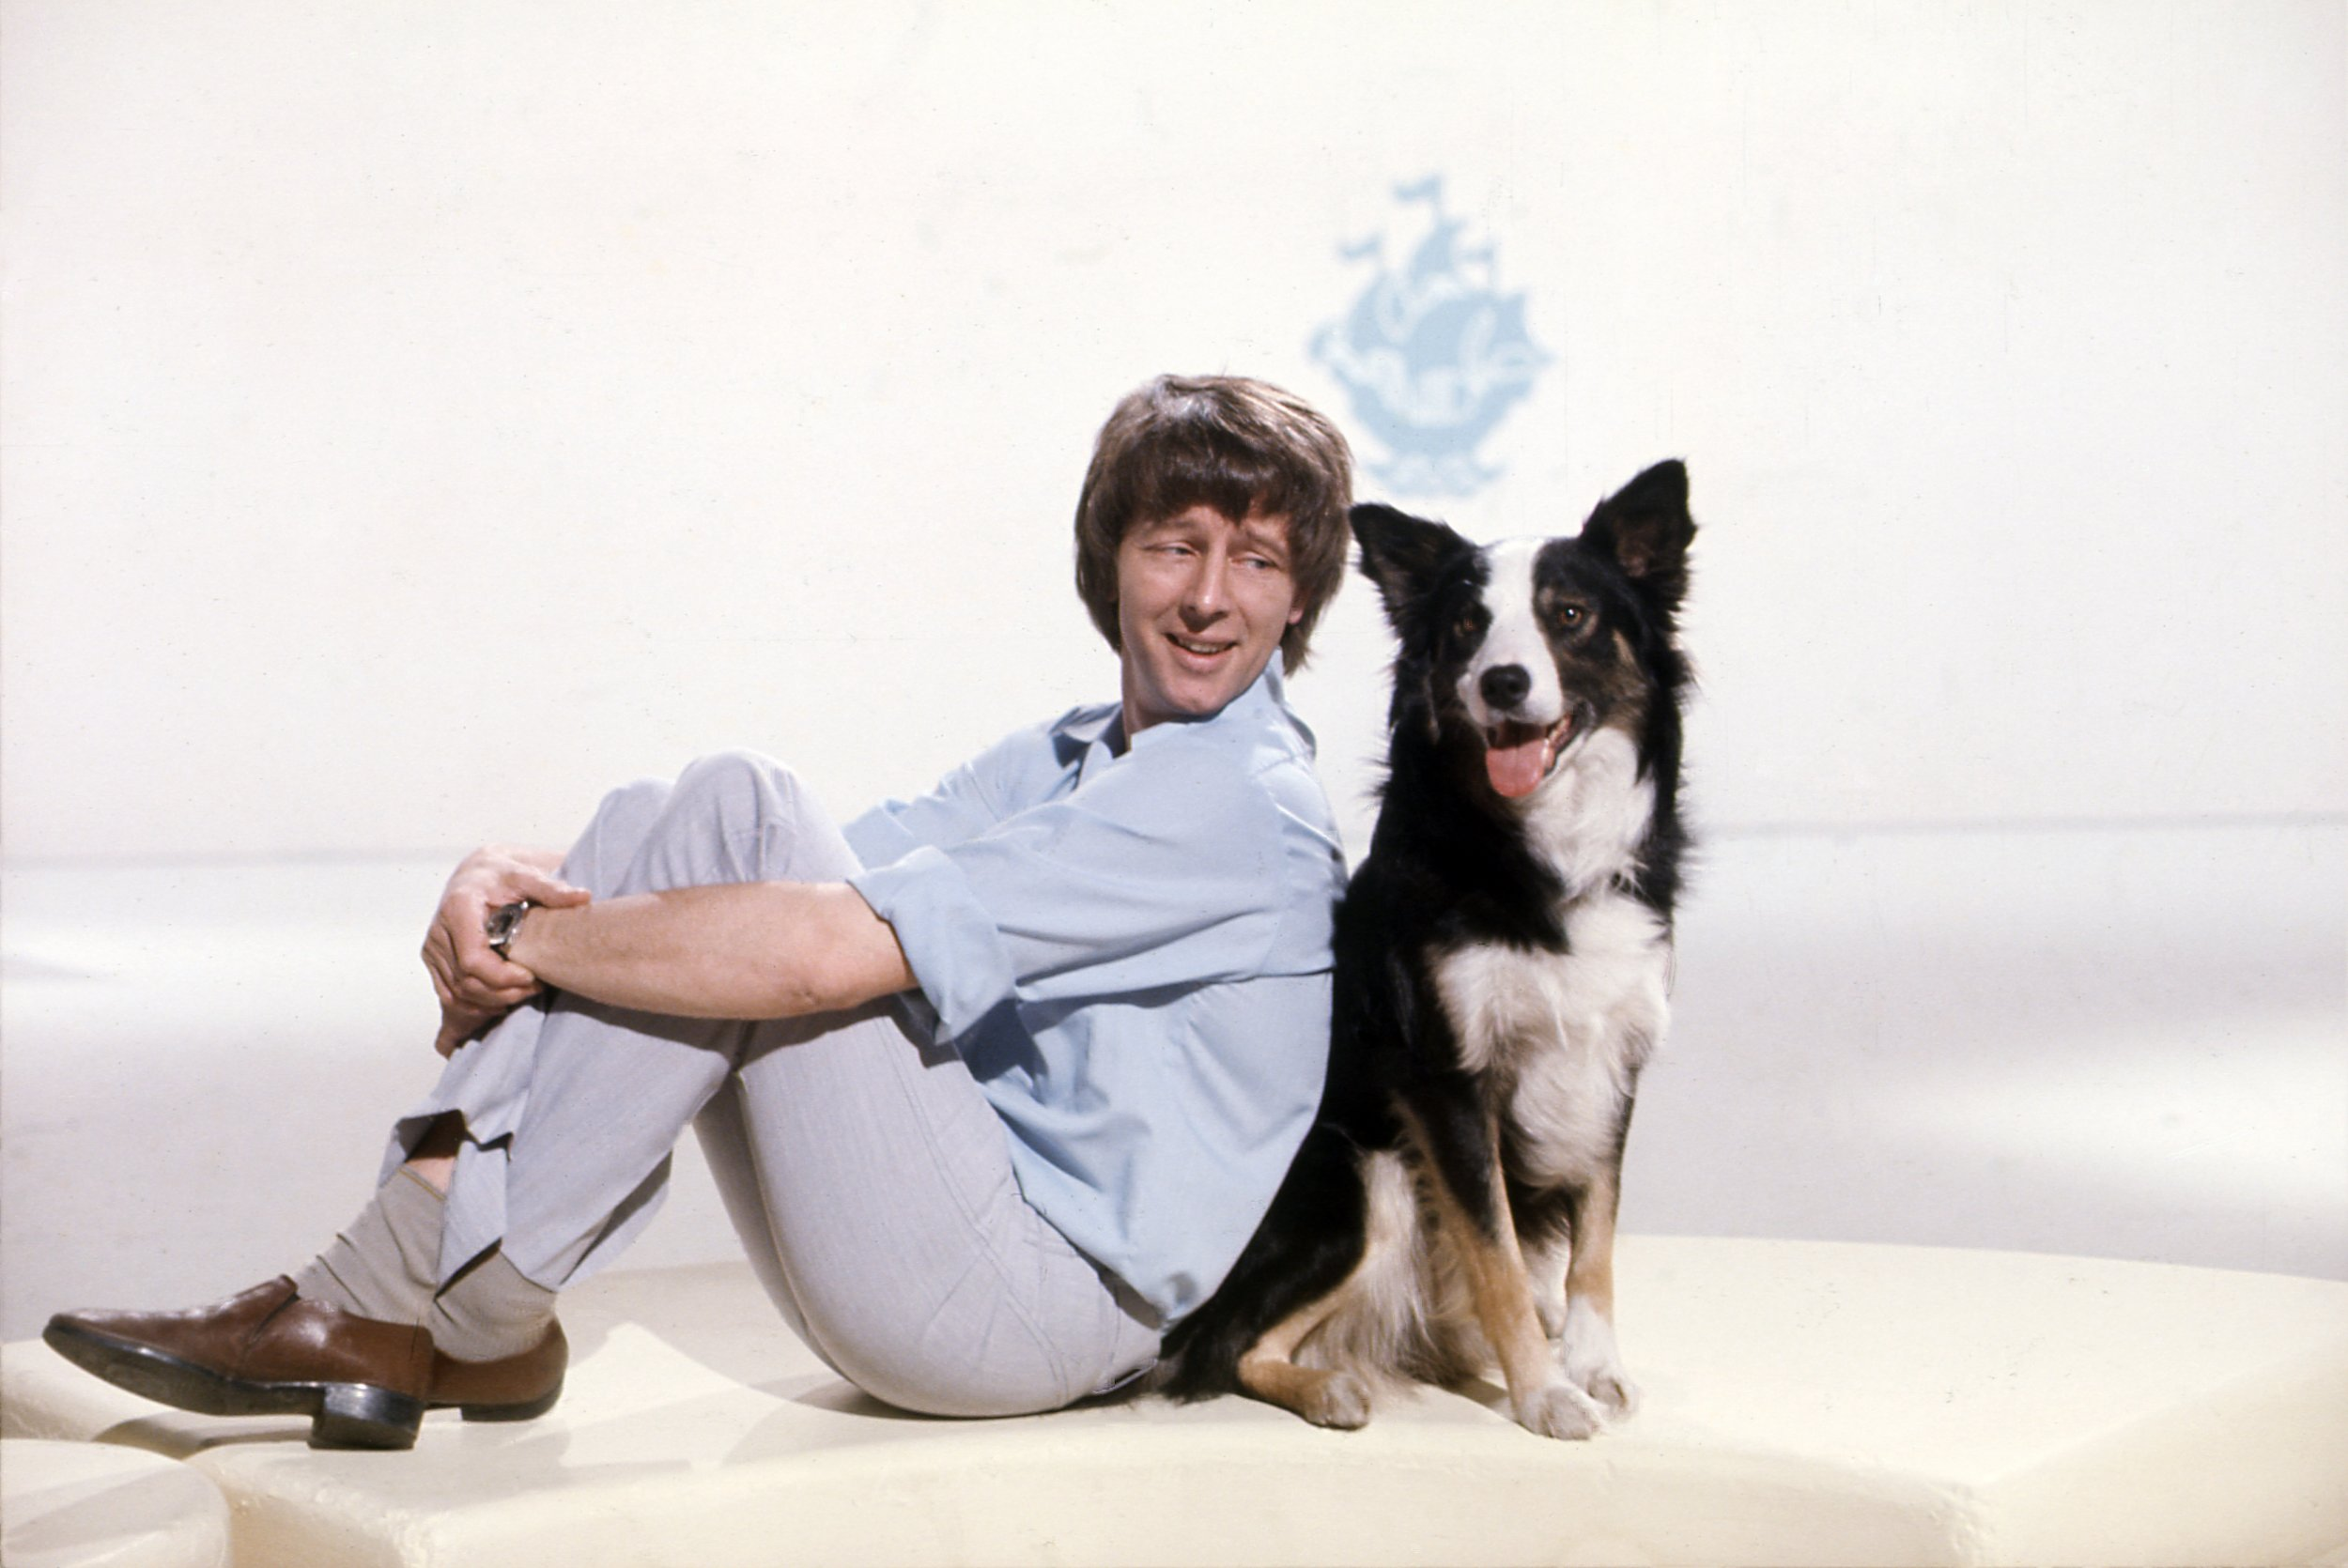 Blue Peter presenters past and present pay tribute to 'legend' John Noakes as he dies aged 83